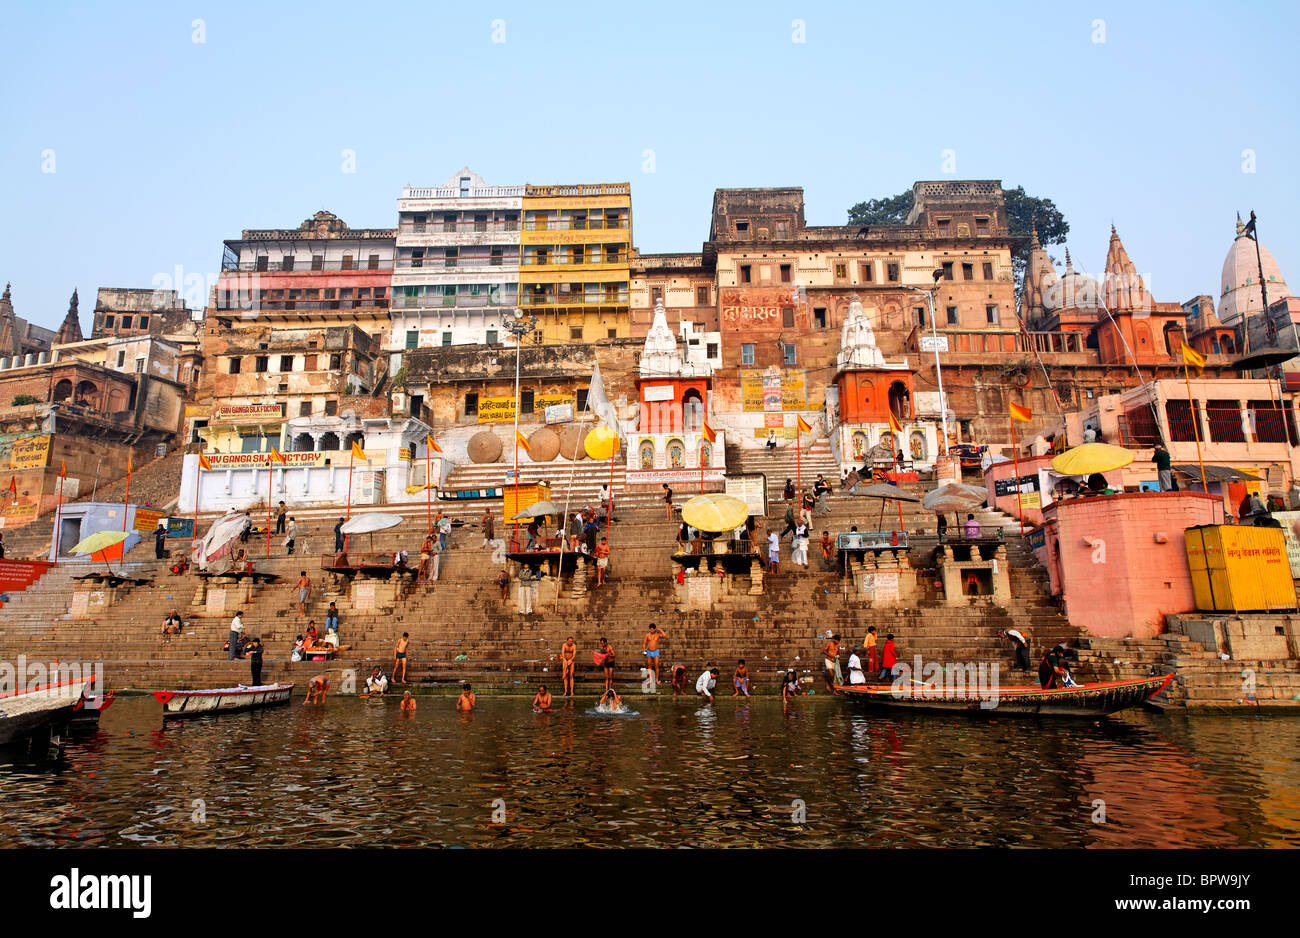 Ghats, River Ganges, Varanasi, India - Stock Image